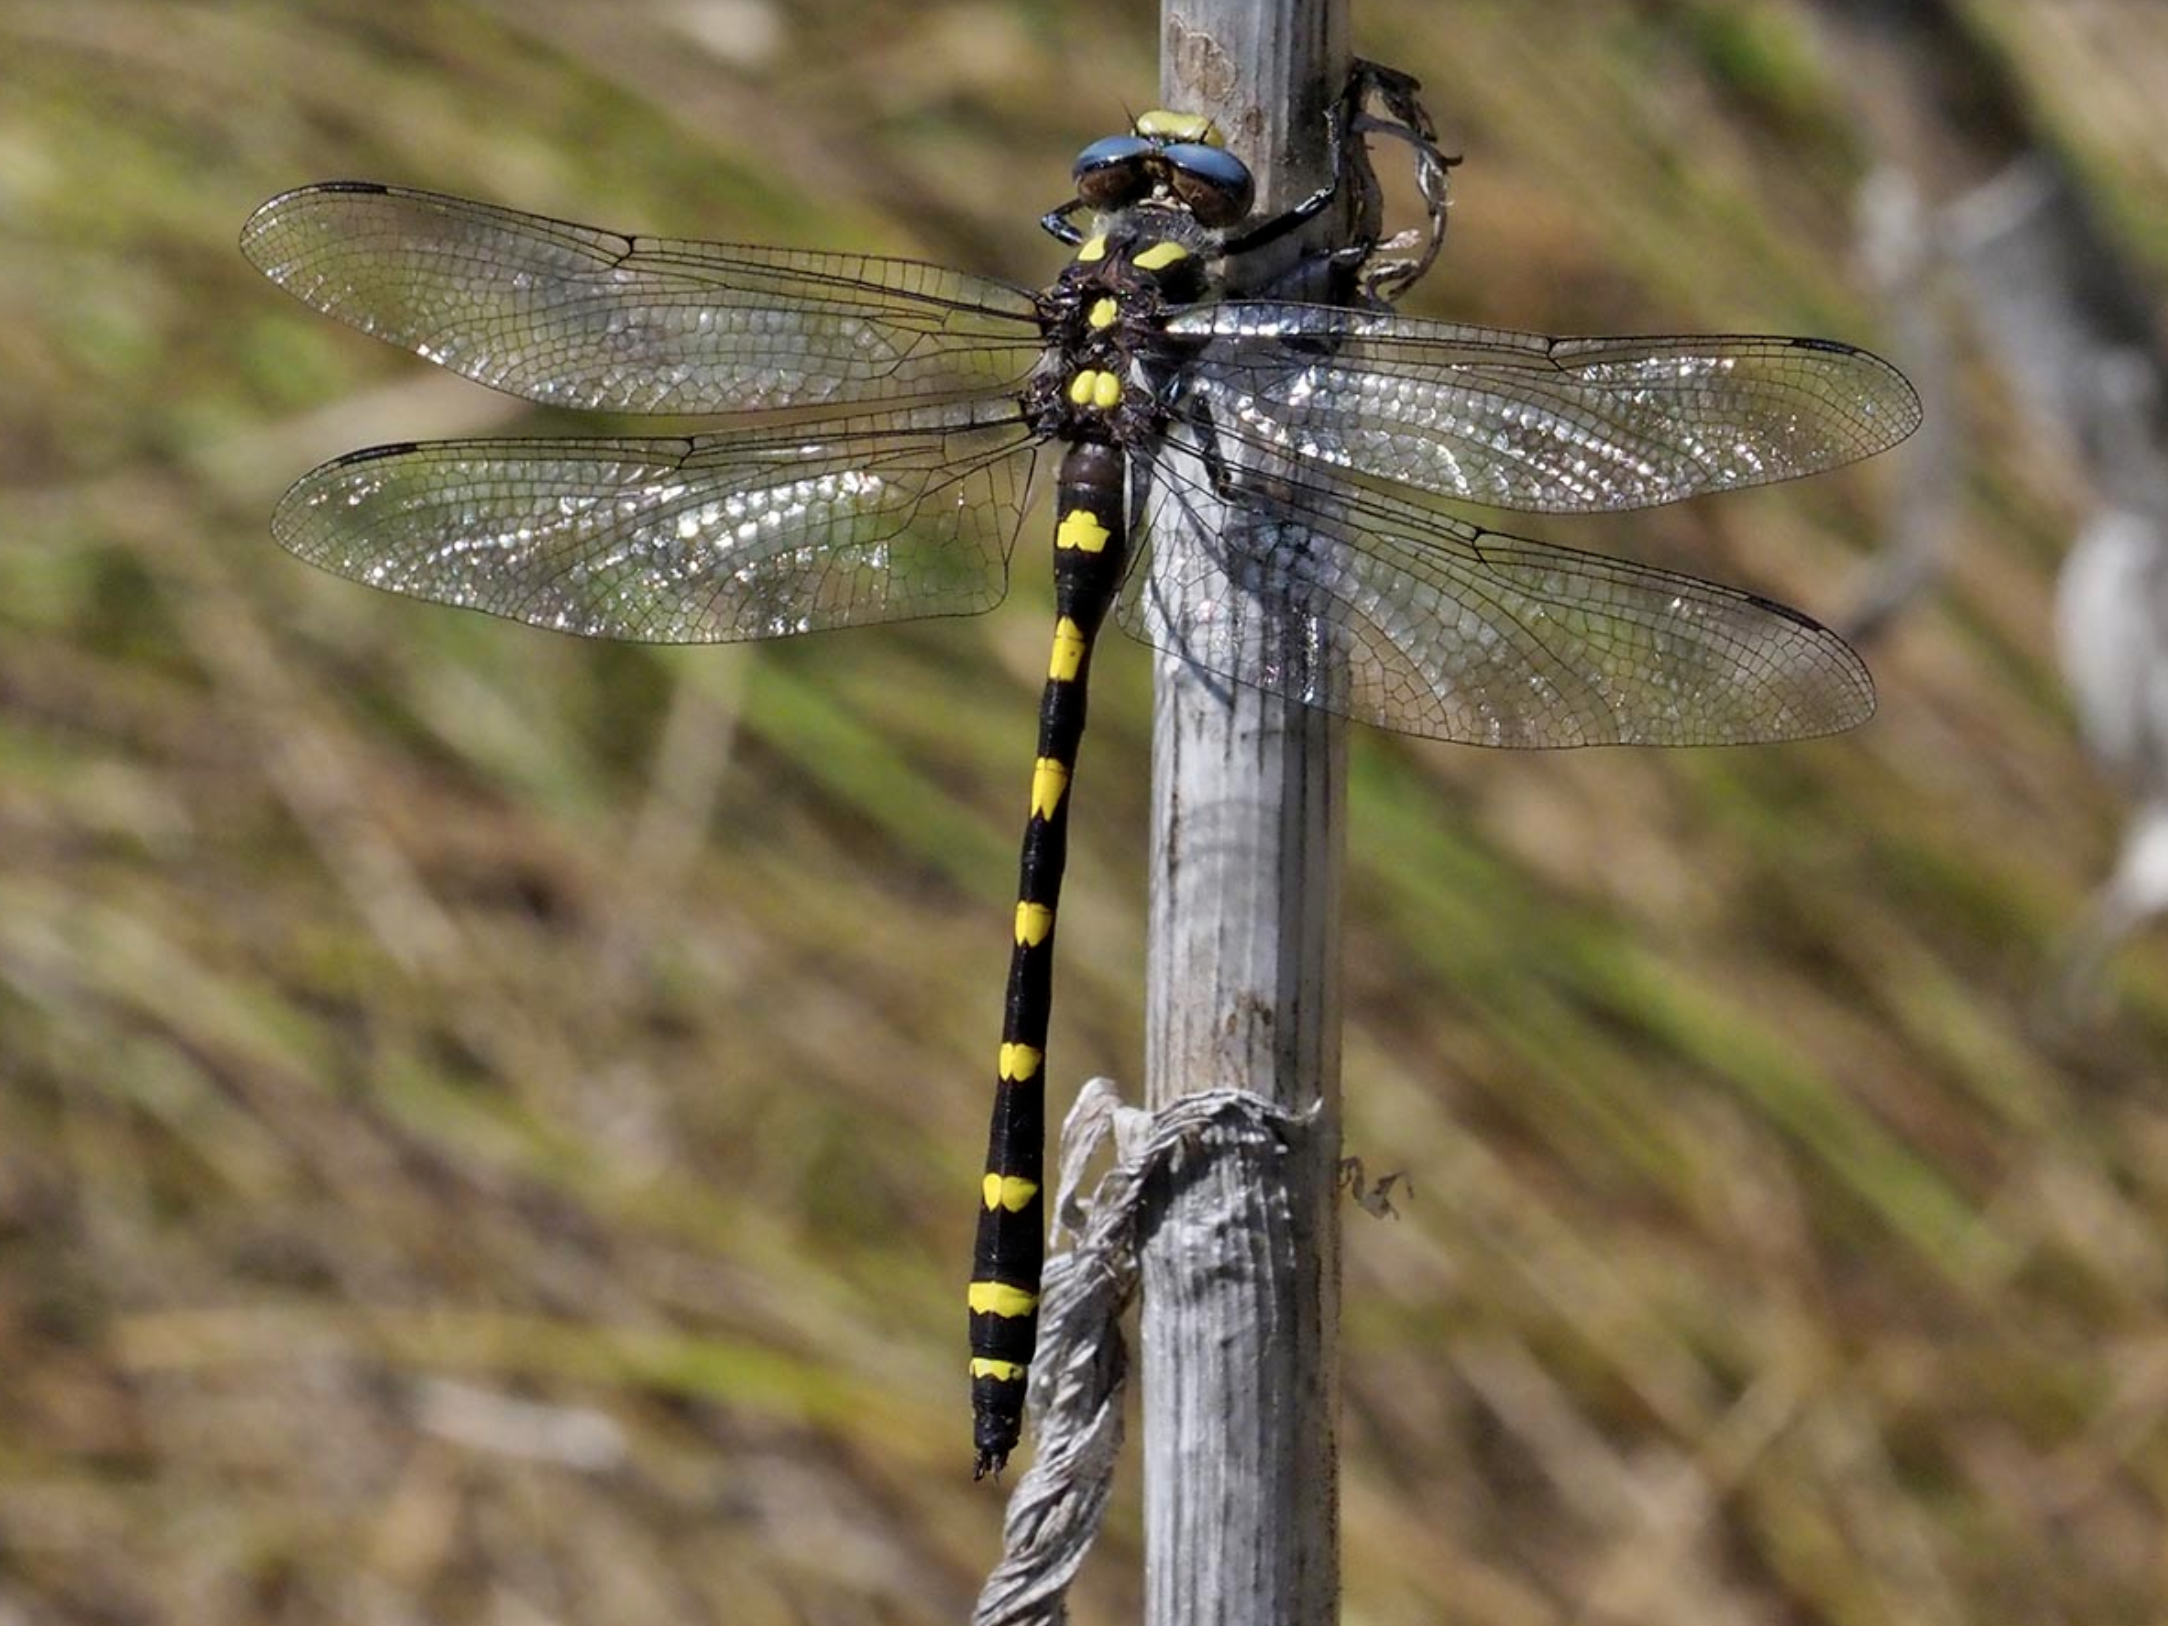 Pacific Spiketail dragonfly ( Cordulegaster dorsalis ) at Vesper Meadow. Dragonflies tend to hold their wings out like an airplane while at rest. Photo by Dennis Paulson